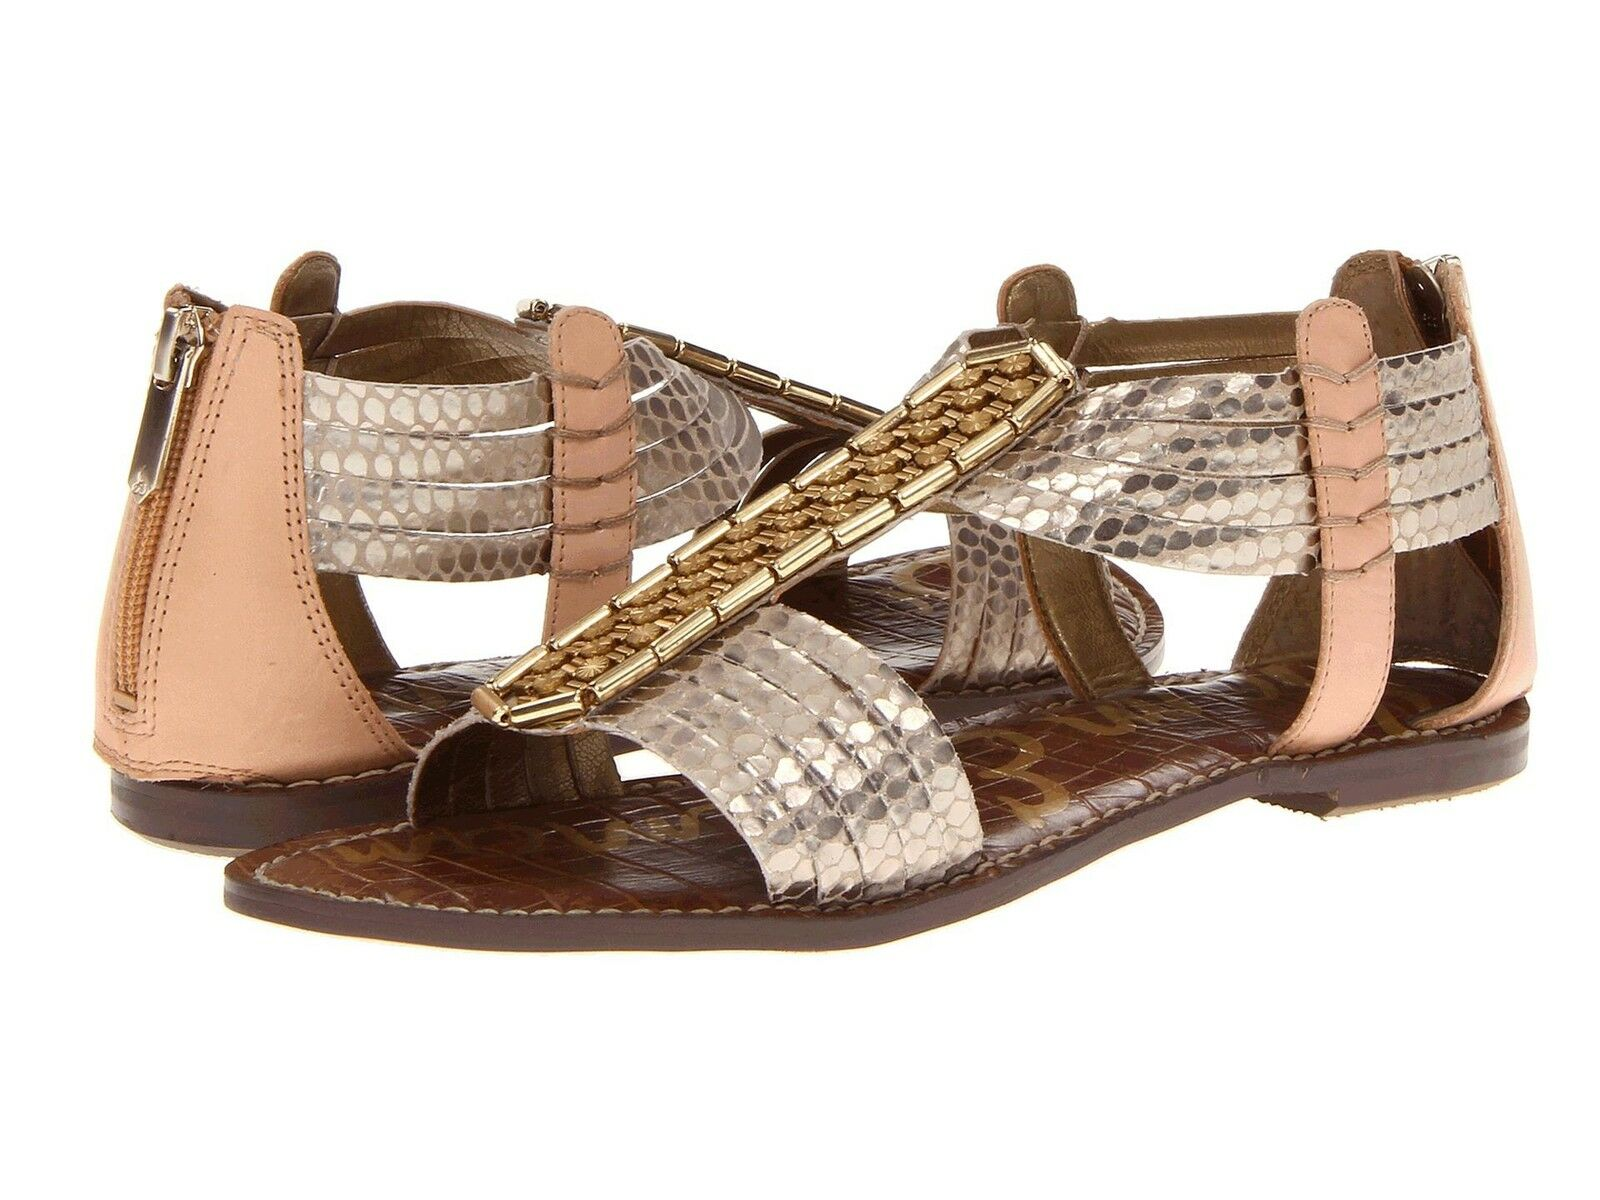 SAM EDELMAN donna SANDALS GLADIATIOR LEATHER LEATHER LEATHER GATSBY STUDED oro NATURAL NEW 4a567c